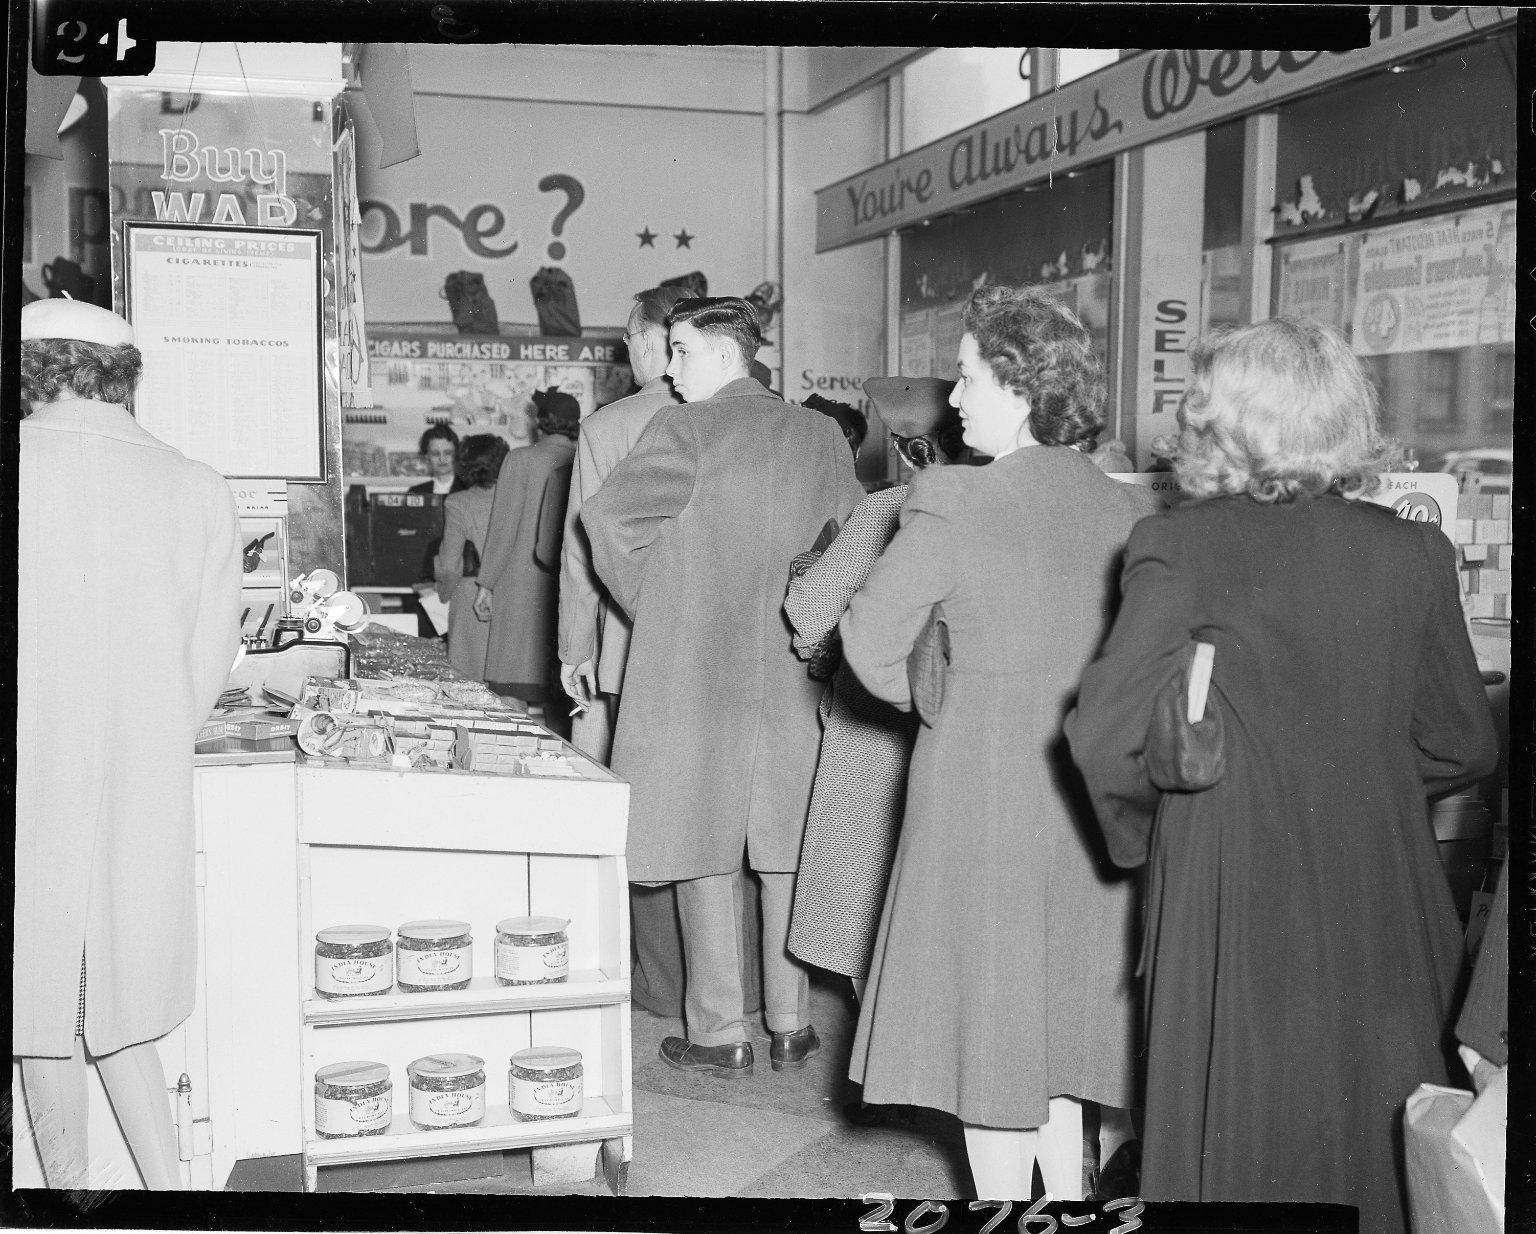 Walgreens Drug Store, people in line for cigarettes